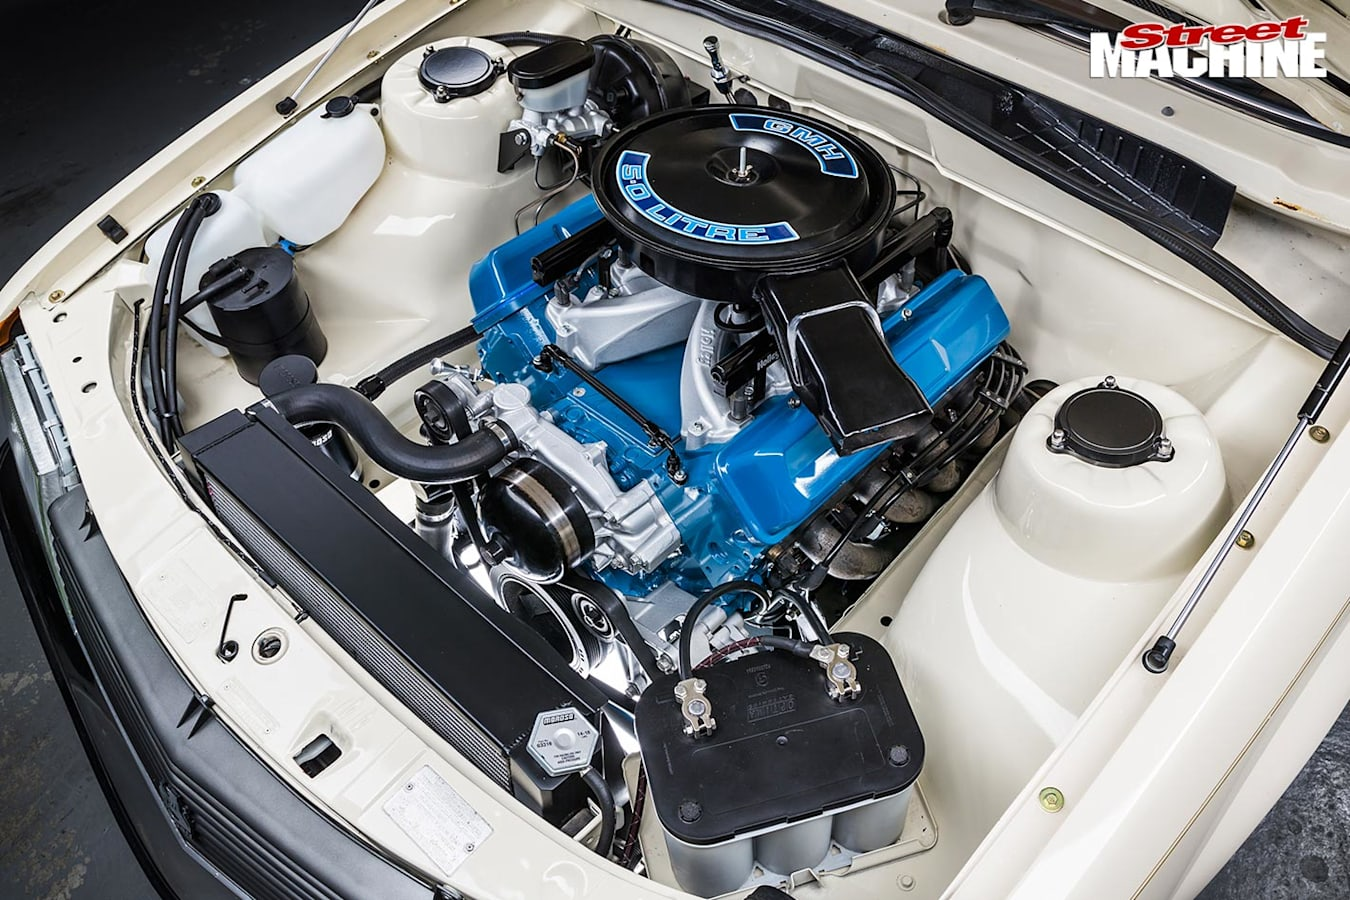 Holden VH Commodore engine bay